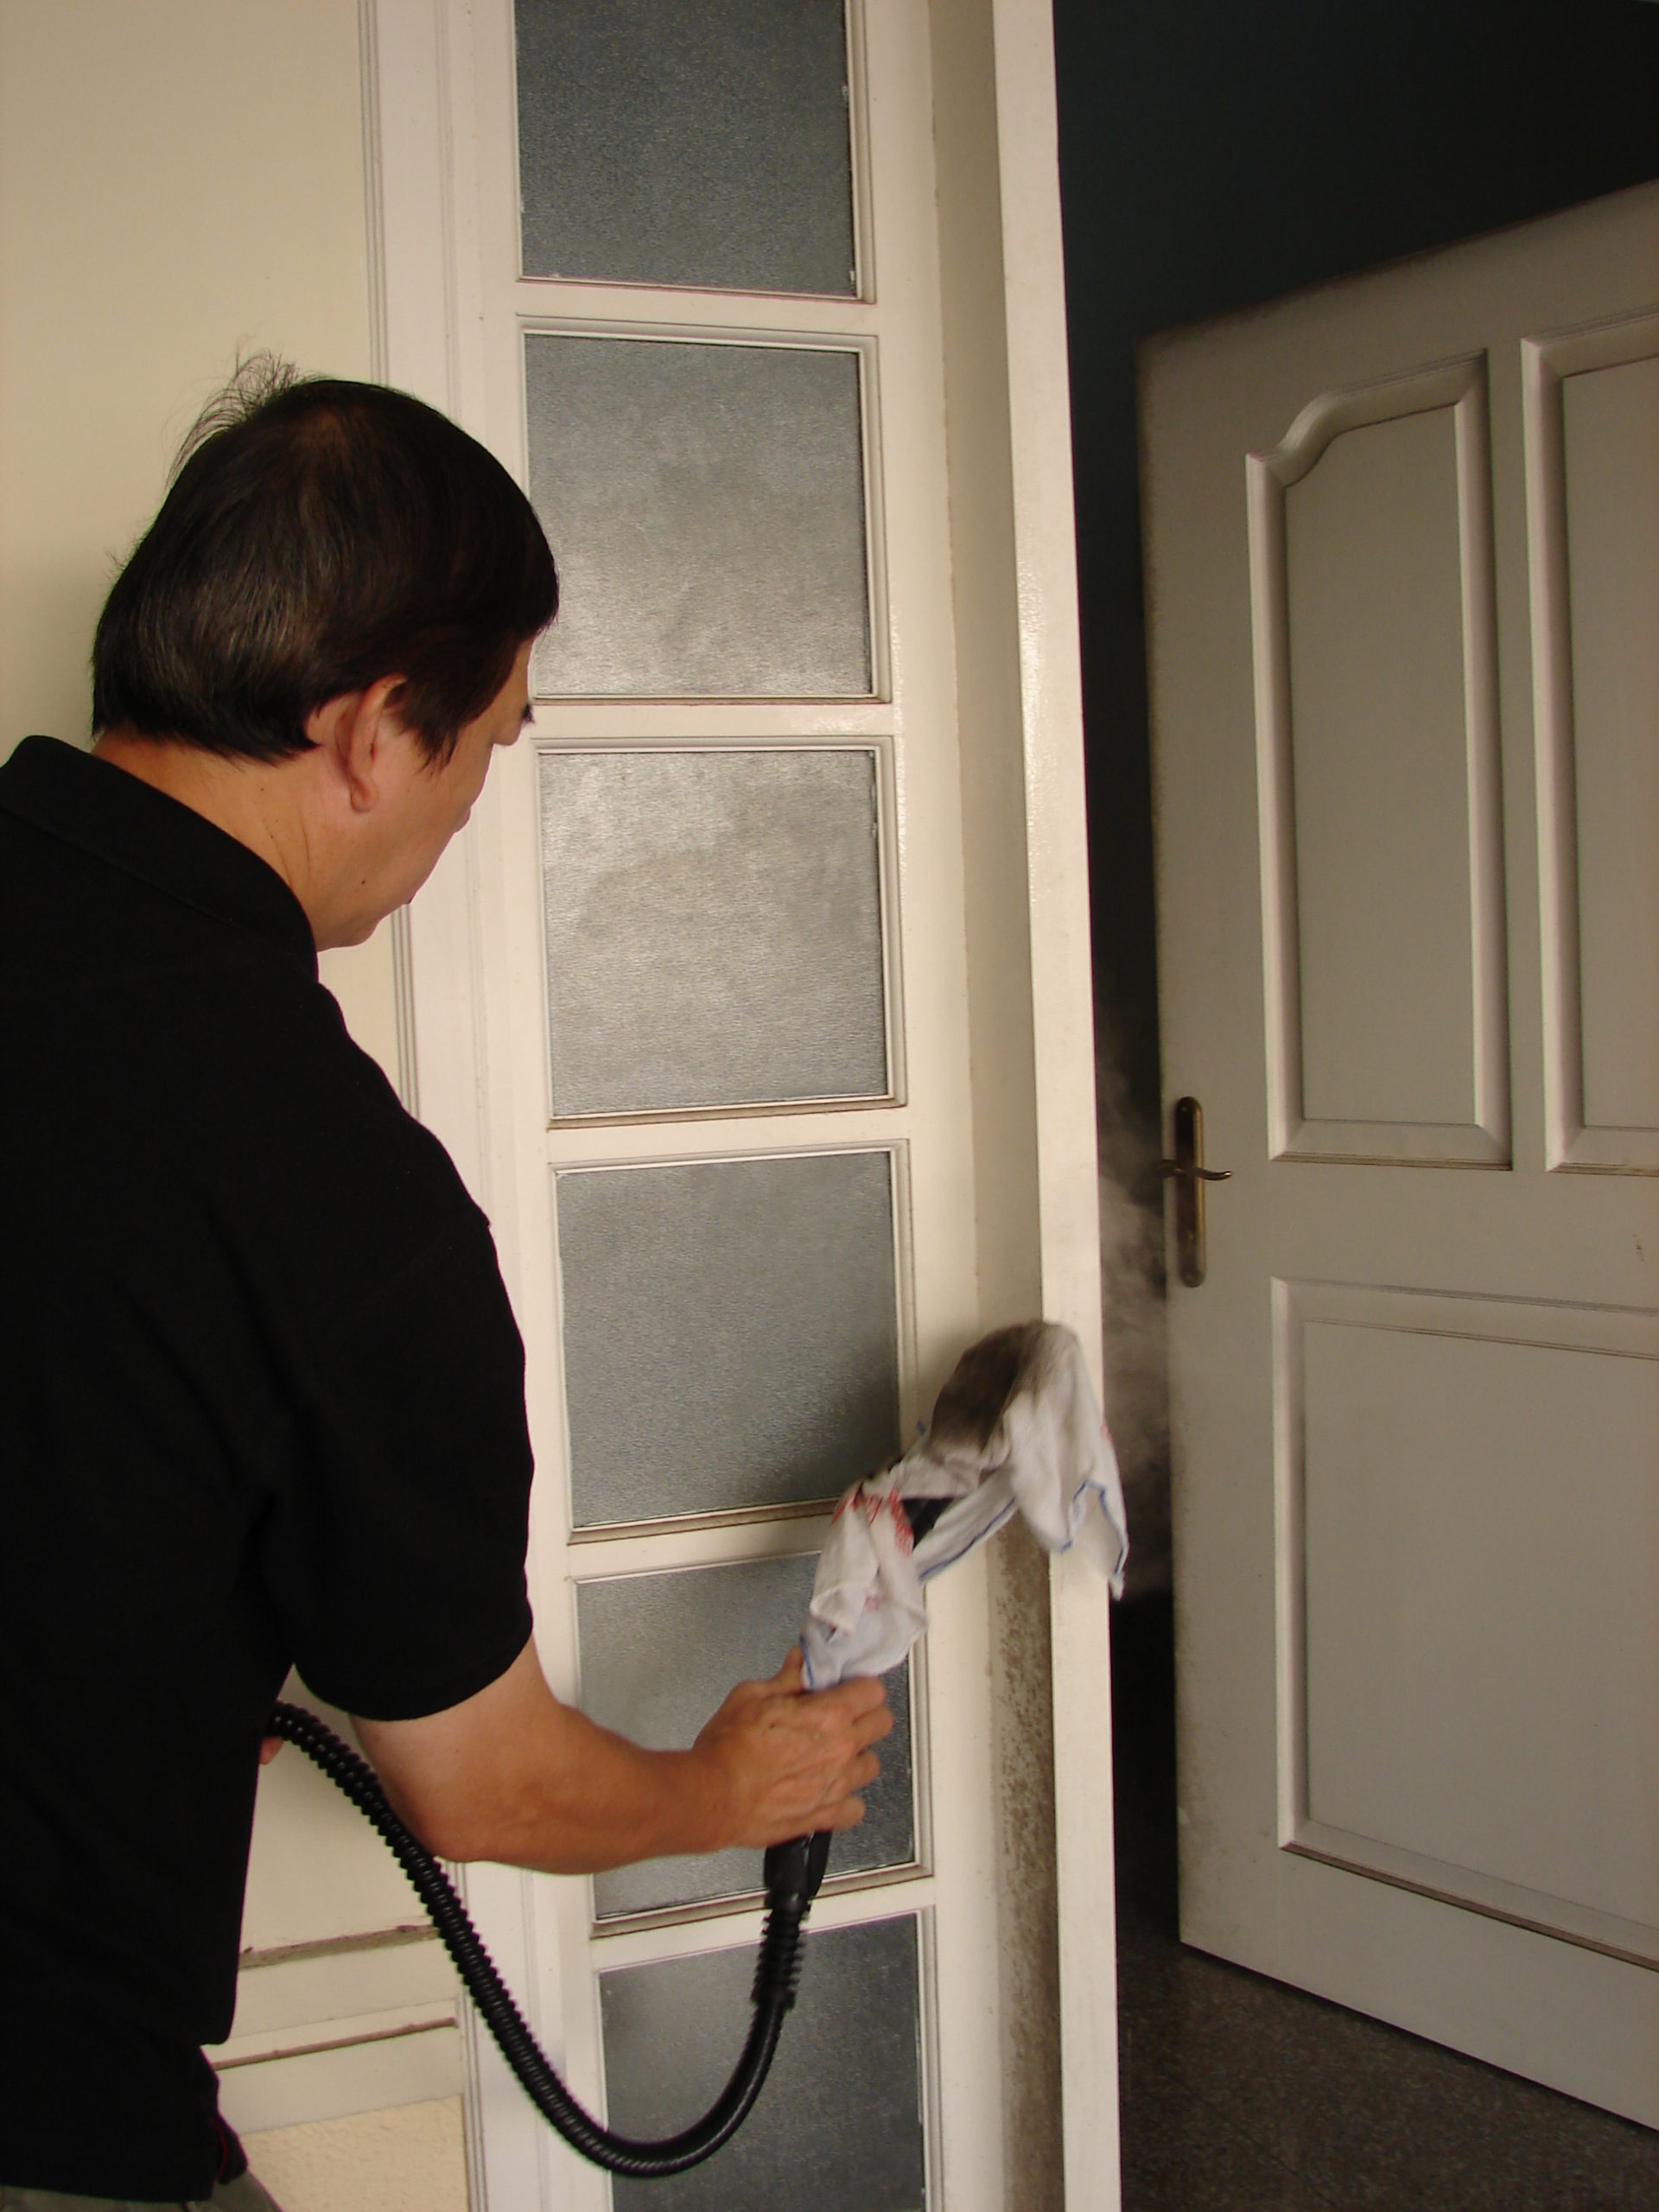 Steam cleaning - Removing Mold